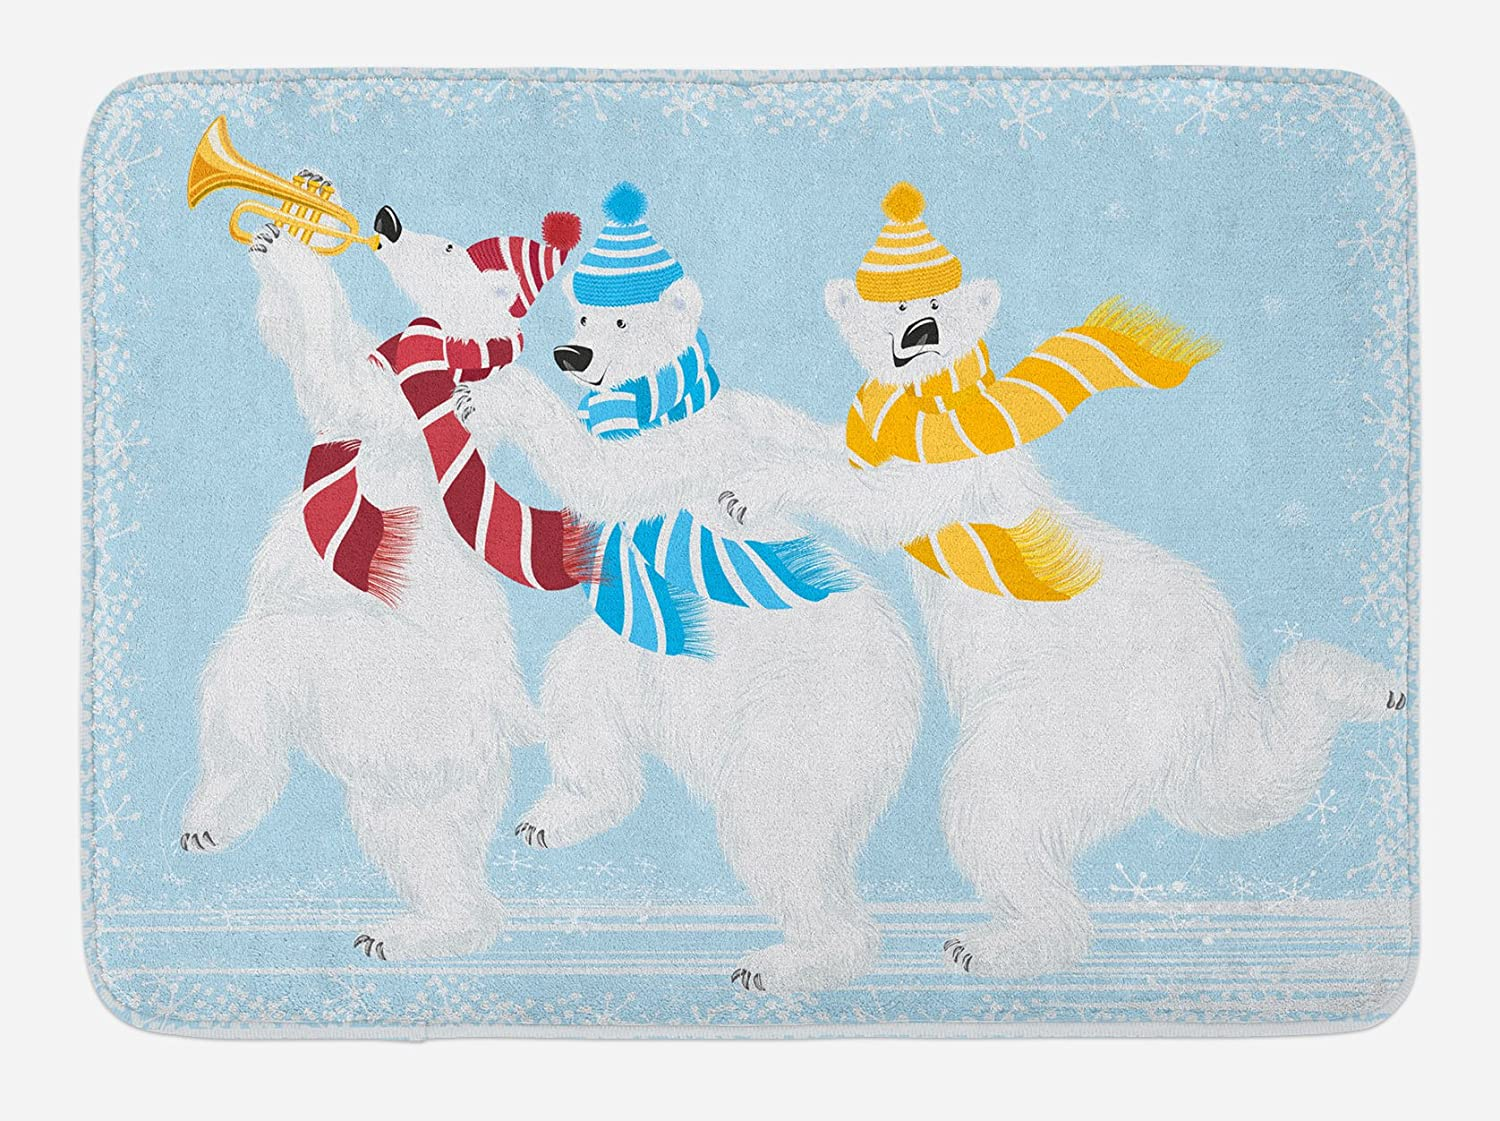 Ambesonne Bear Bath Mat, Christmas Time at North Pole Theme 3 Funny Characters with Scarves and Trumpet, Plush Bathroom Decor Mat with Non Slip Backing, 29.5